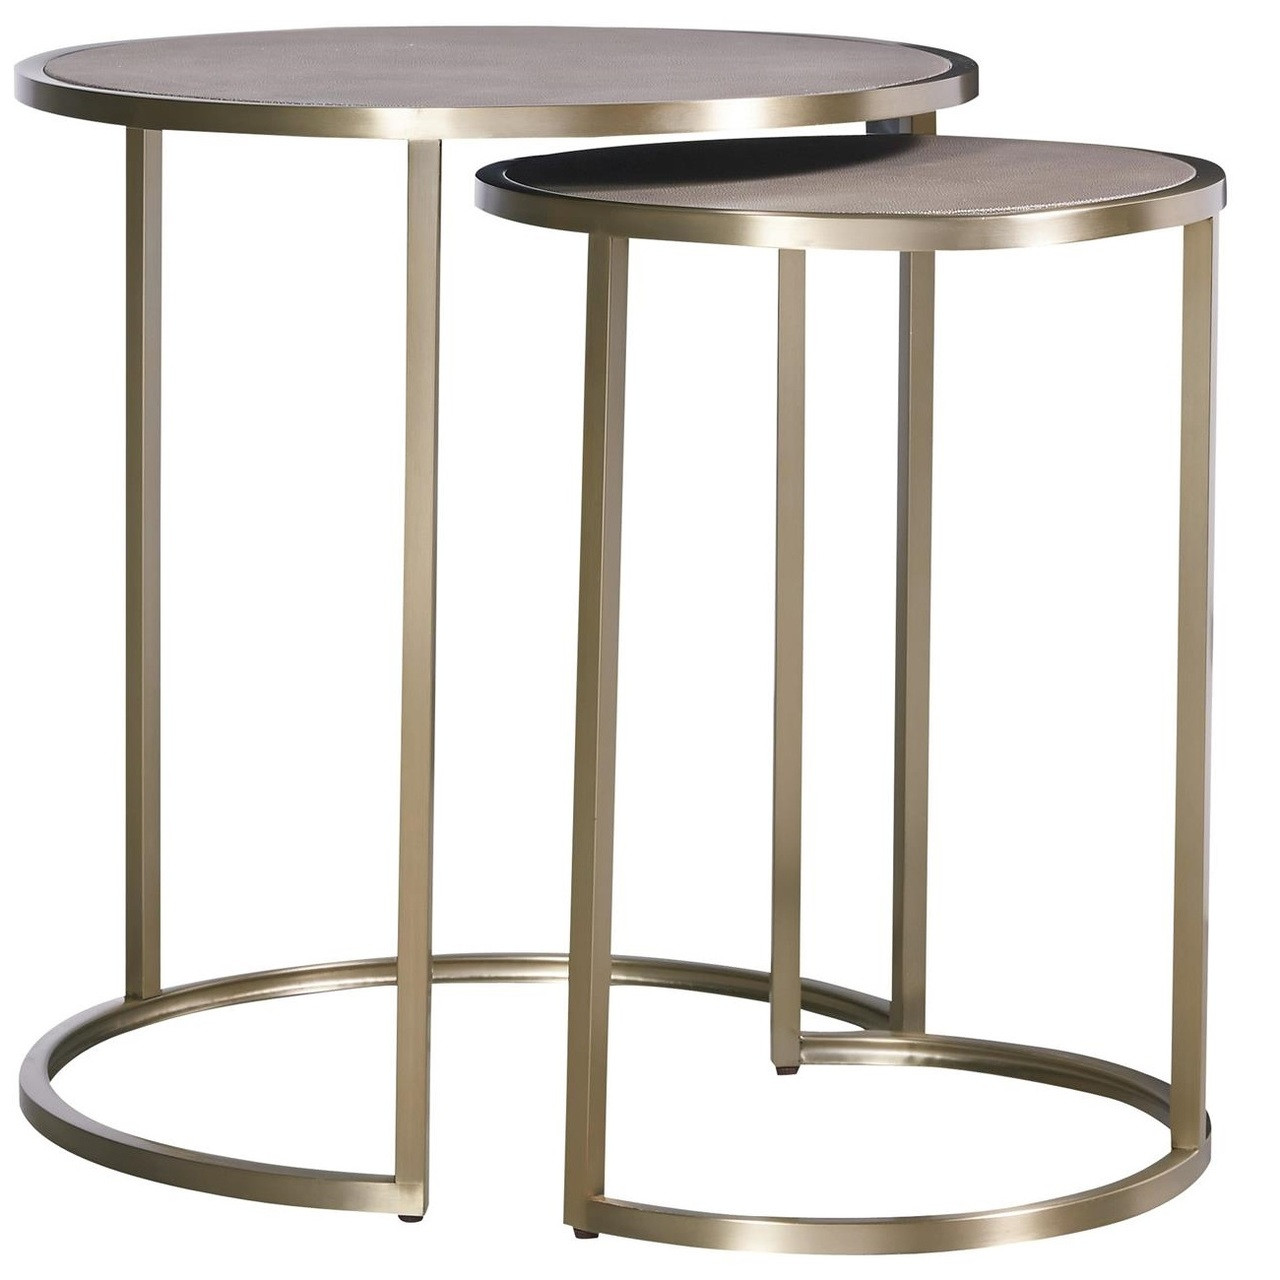 Portobello Modern Shagreen Brass Round Nesting Tables